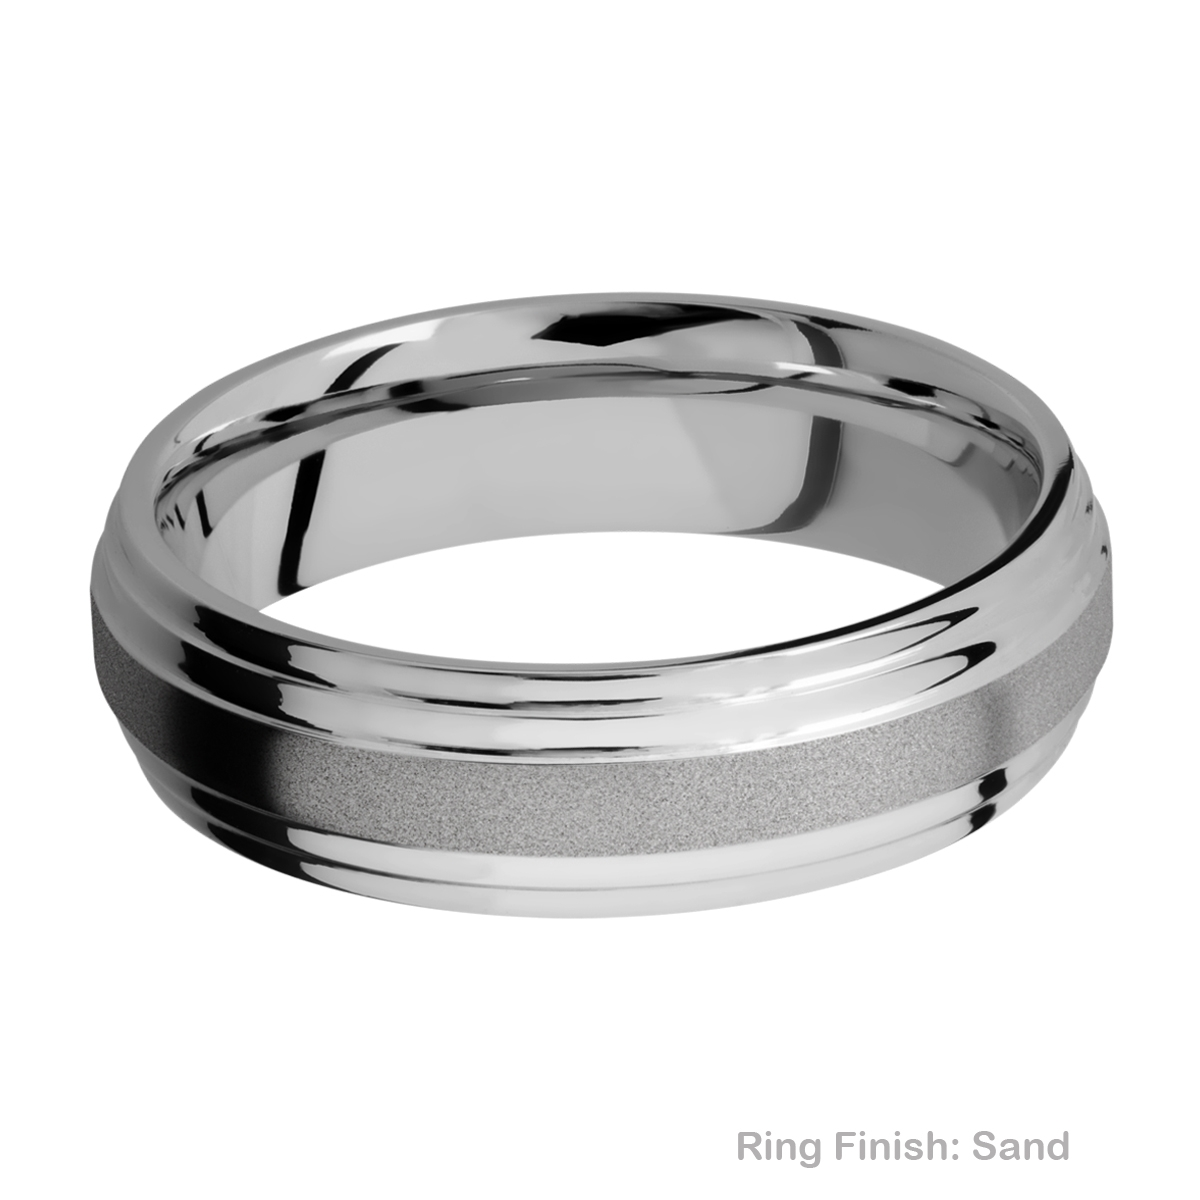 Lashbrook 6F2S Titanium Wedding Ring or Band Alternative View 5